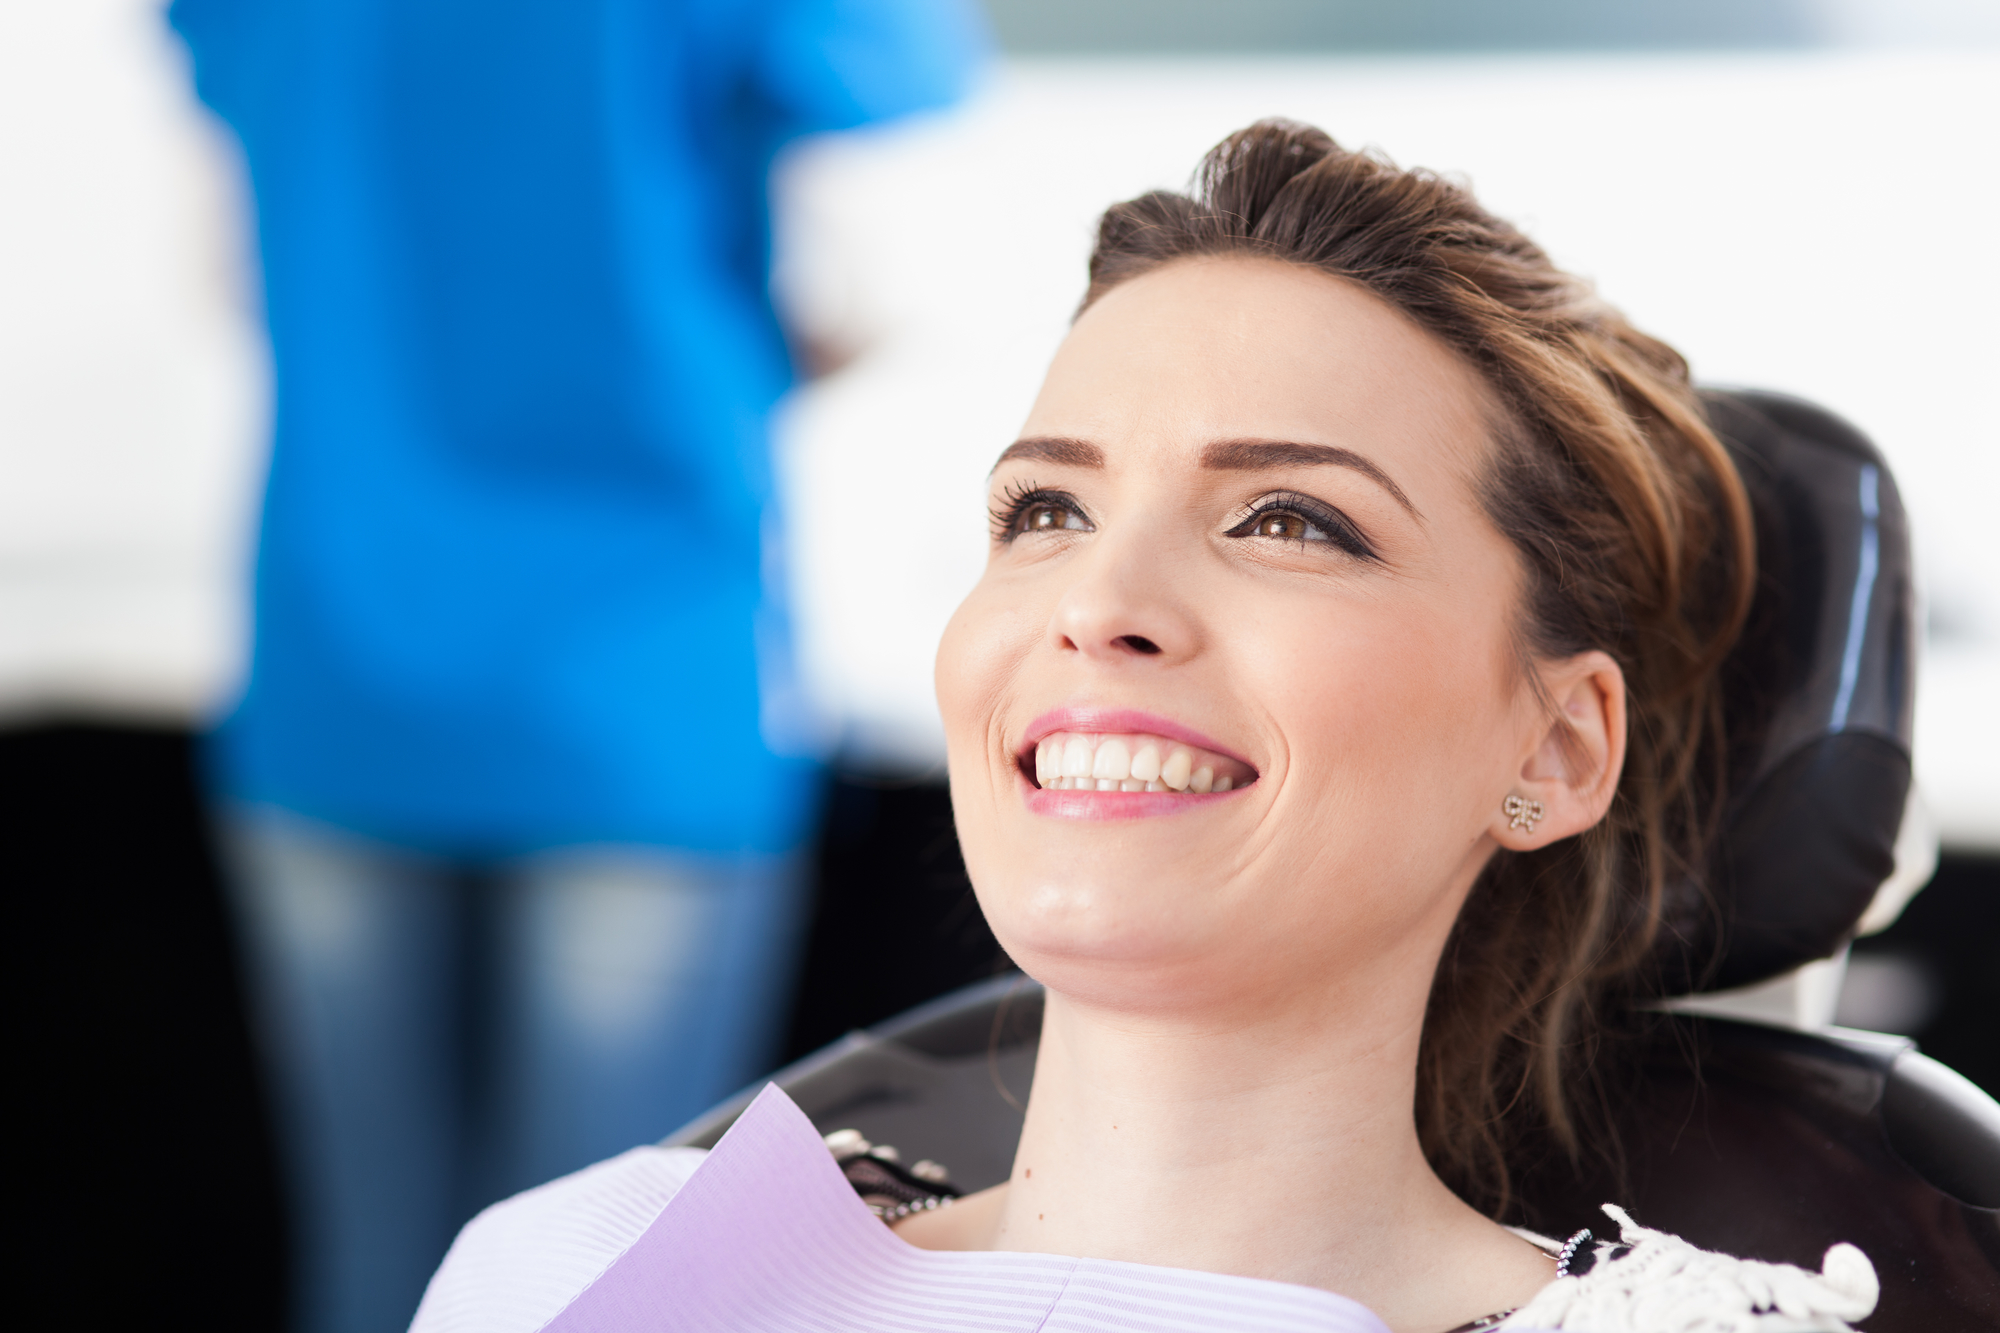 Holistic Periodontist Palm Beach Gardens | Why You Should See a Holistic Periodontist